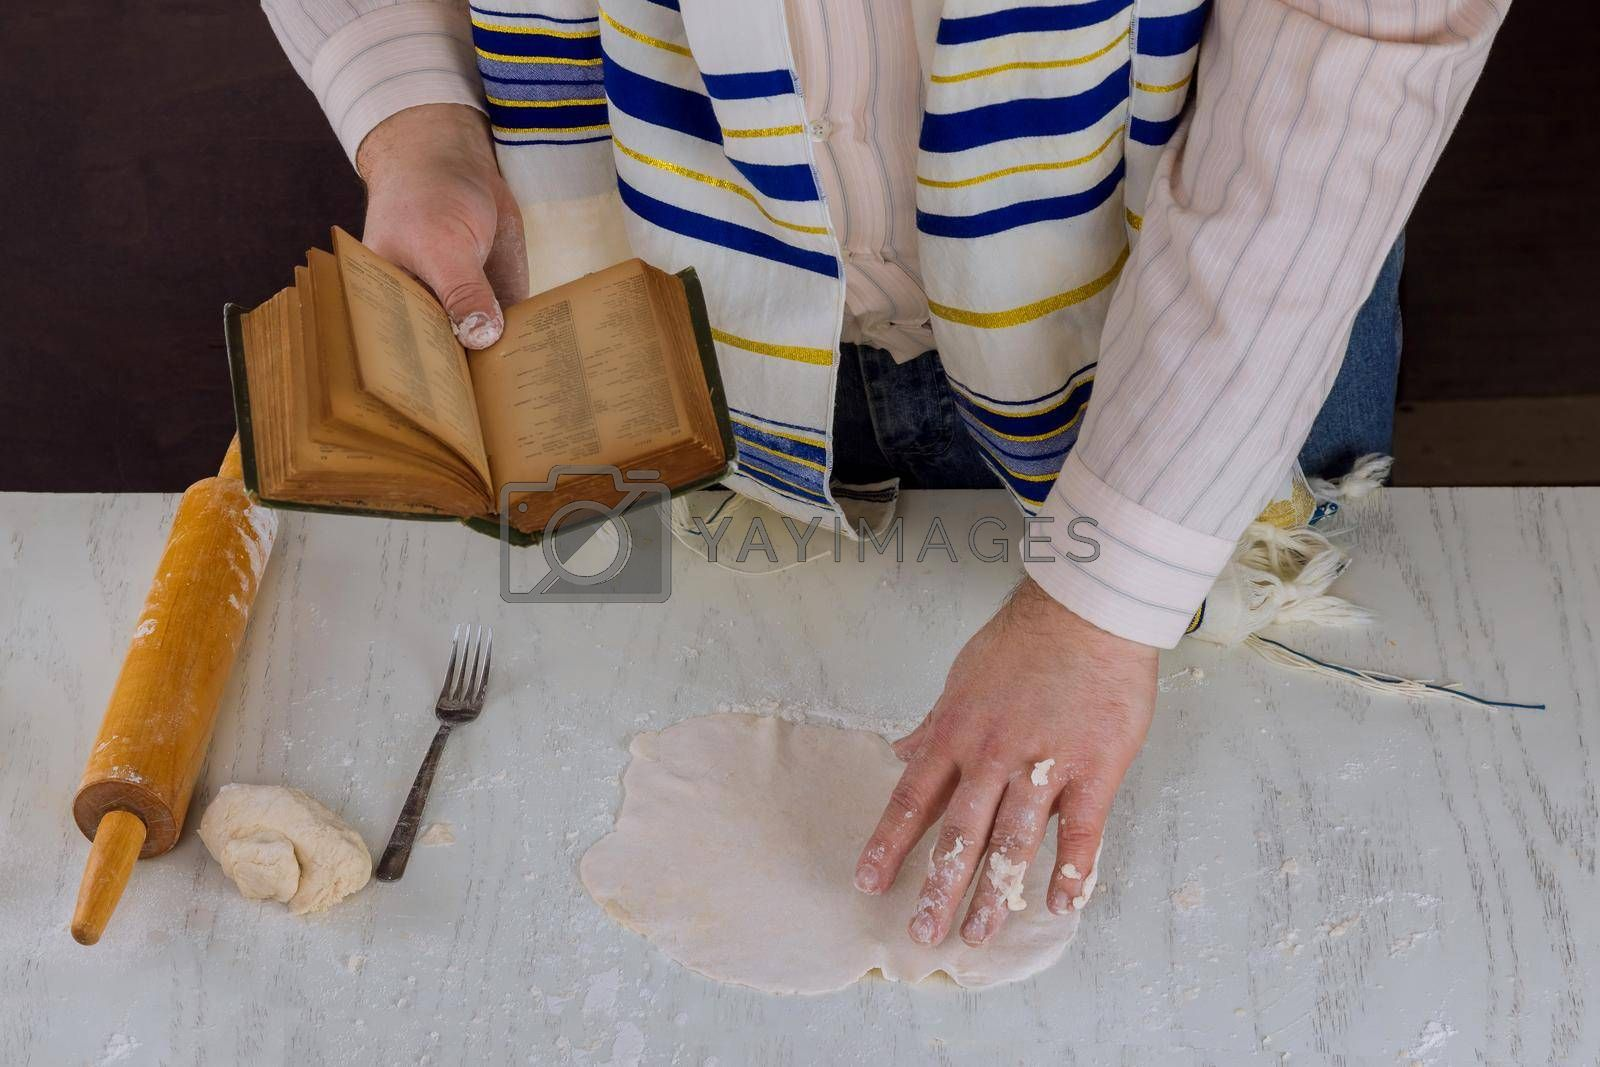 Jewish festival of Pesach with prayer during the preparation of kosher blessing matzah